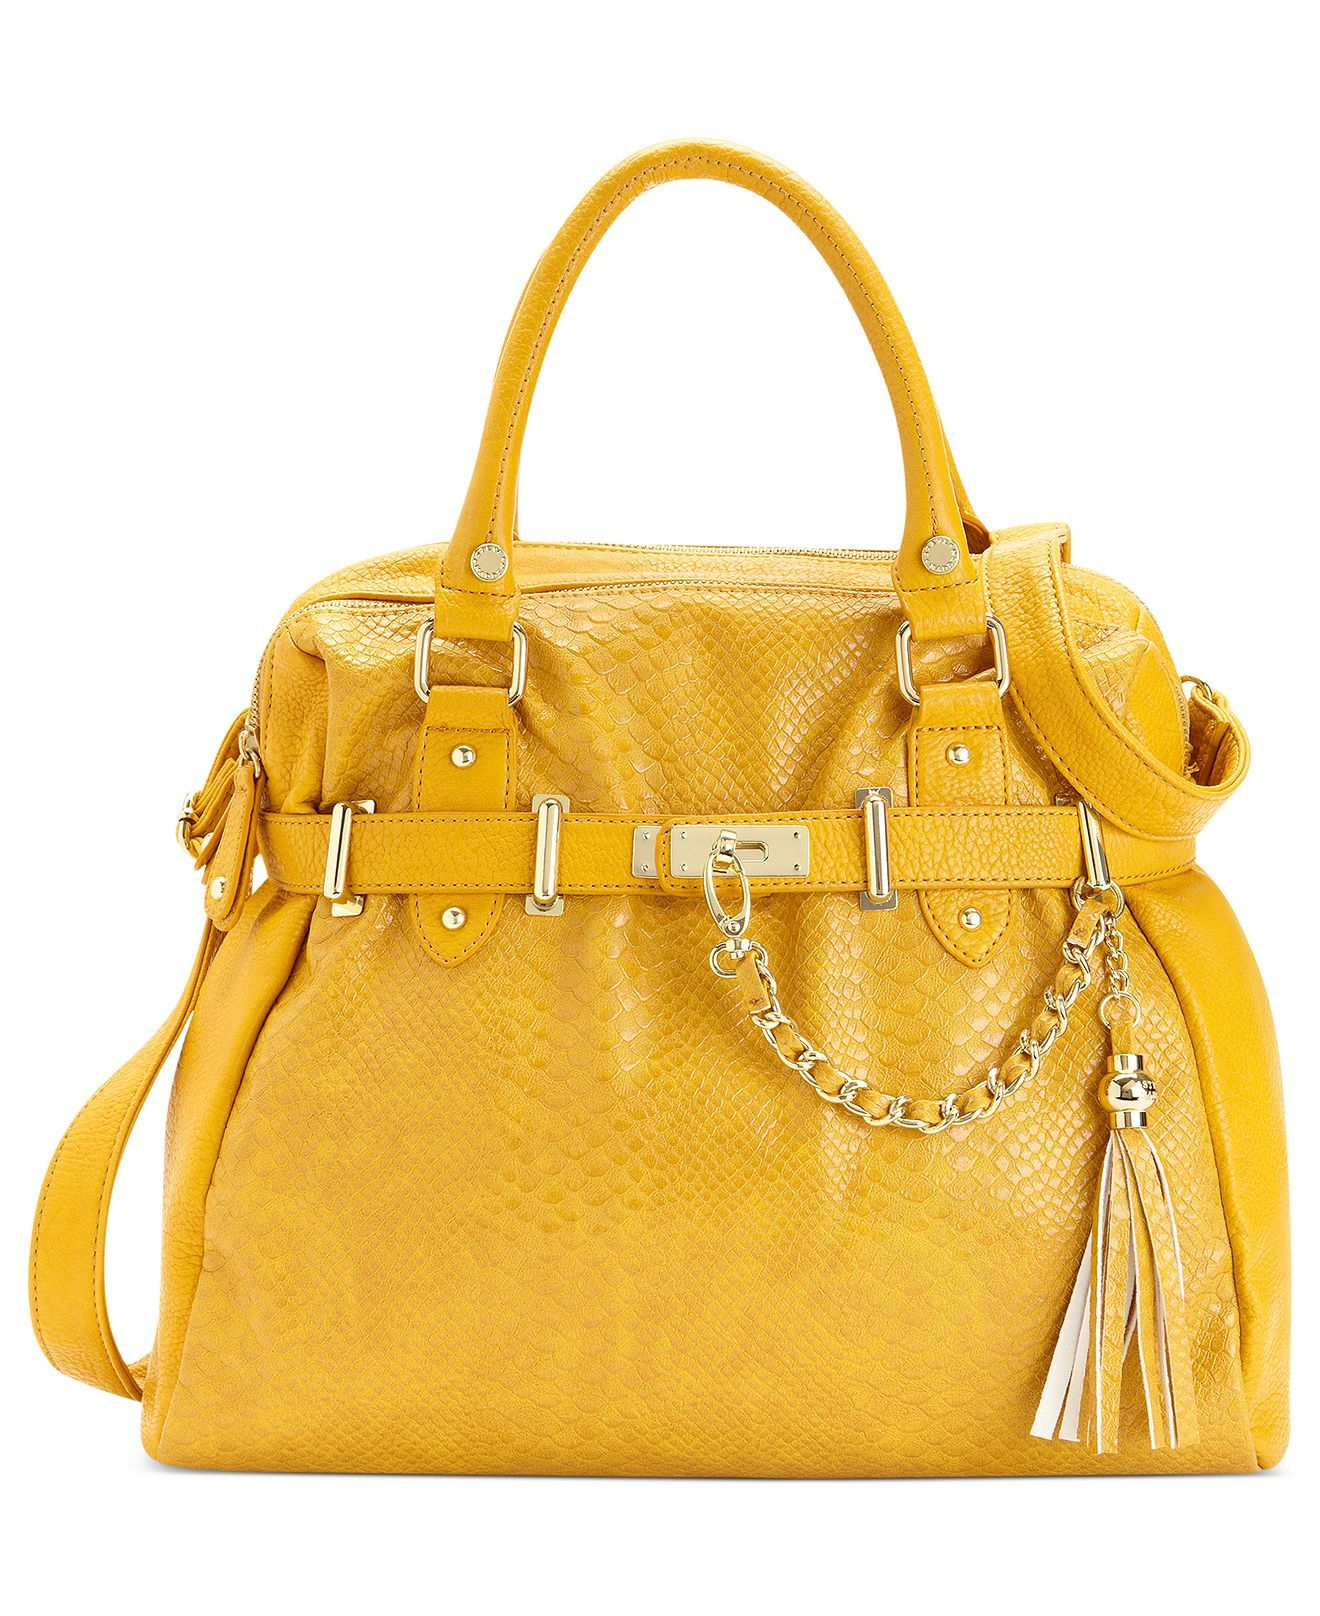 Steve madden handbag bnancy snake satchel sale for Macy s jewelry clearance